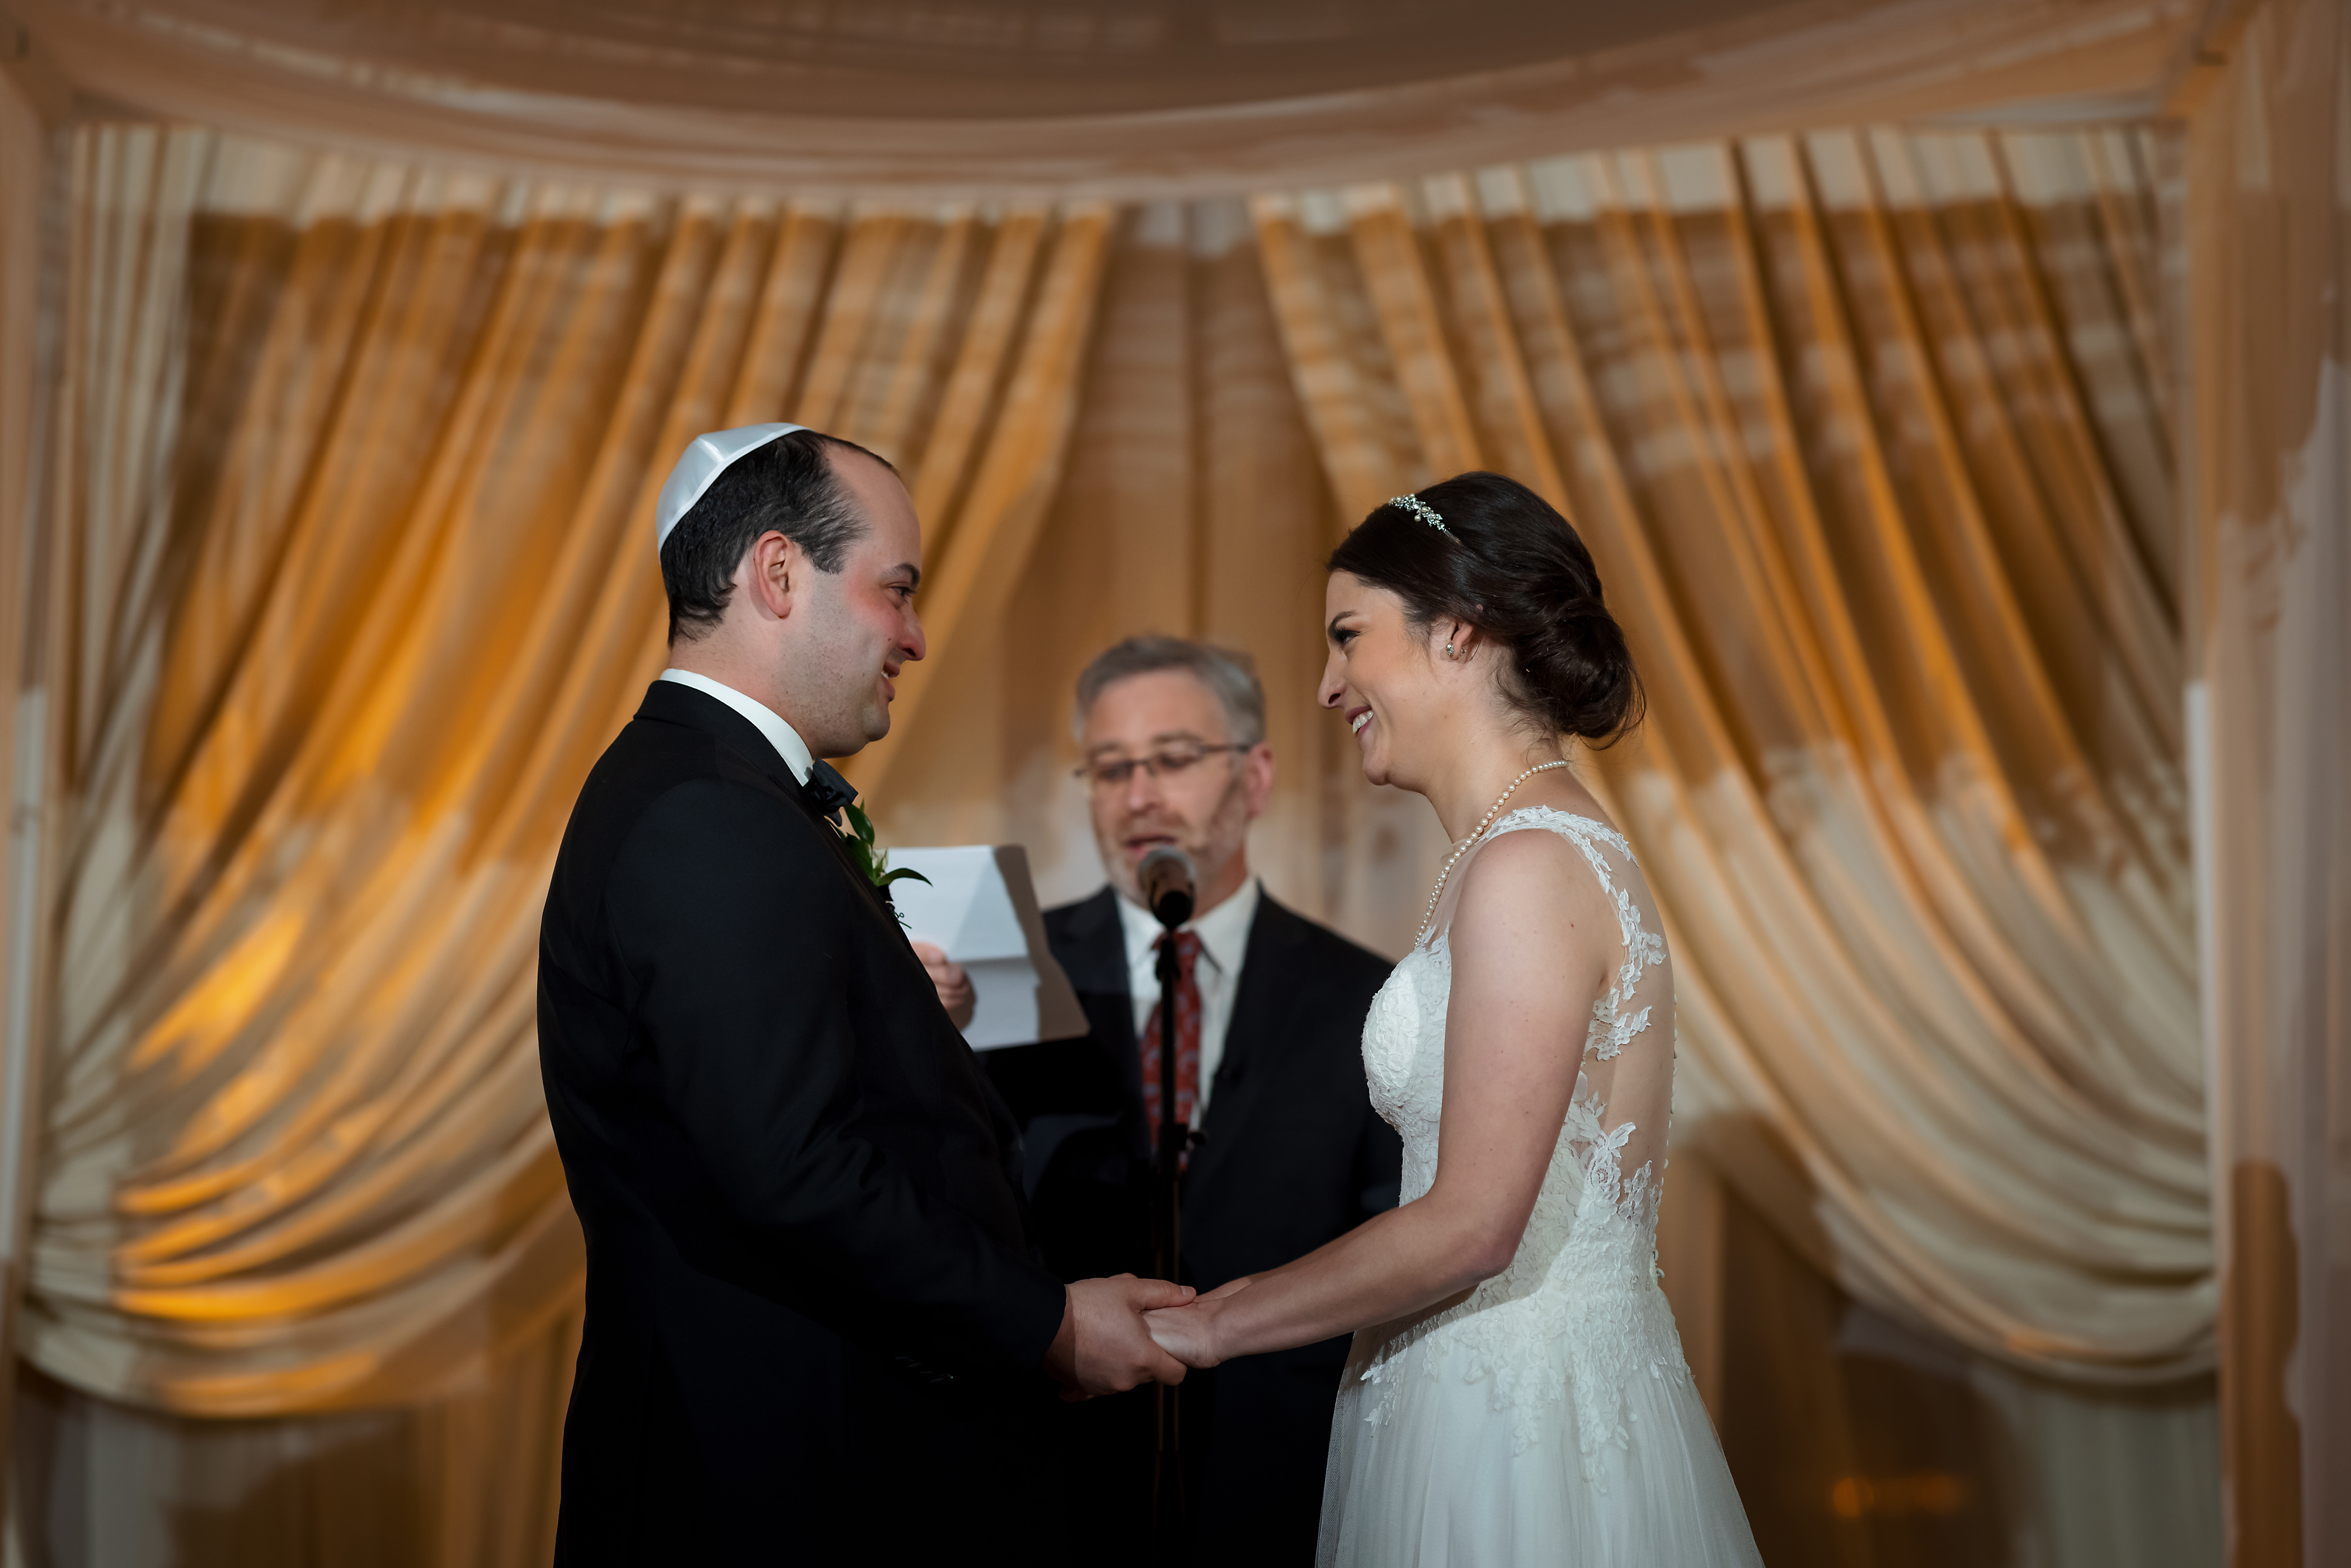 Bride and groom hold hands during wedding ceremony at the Rookery Building in Chicago